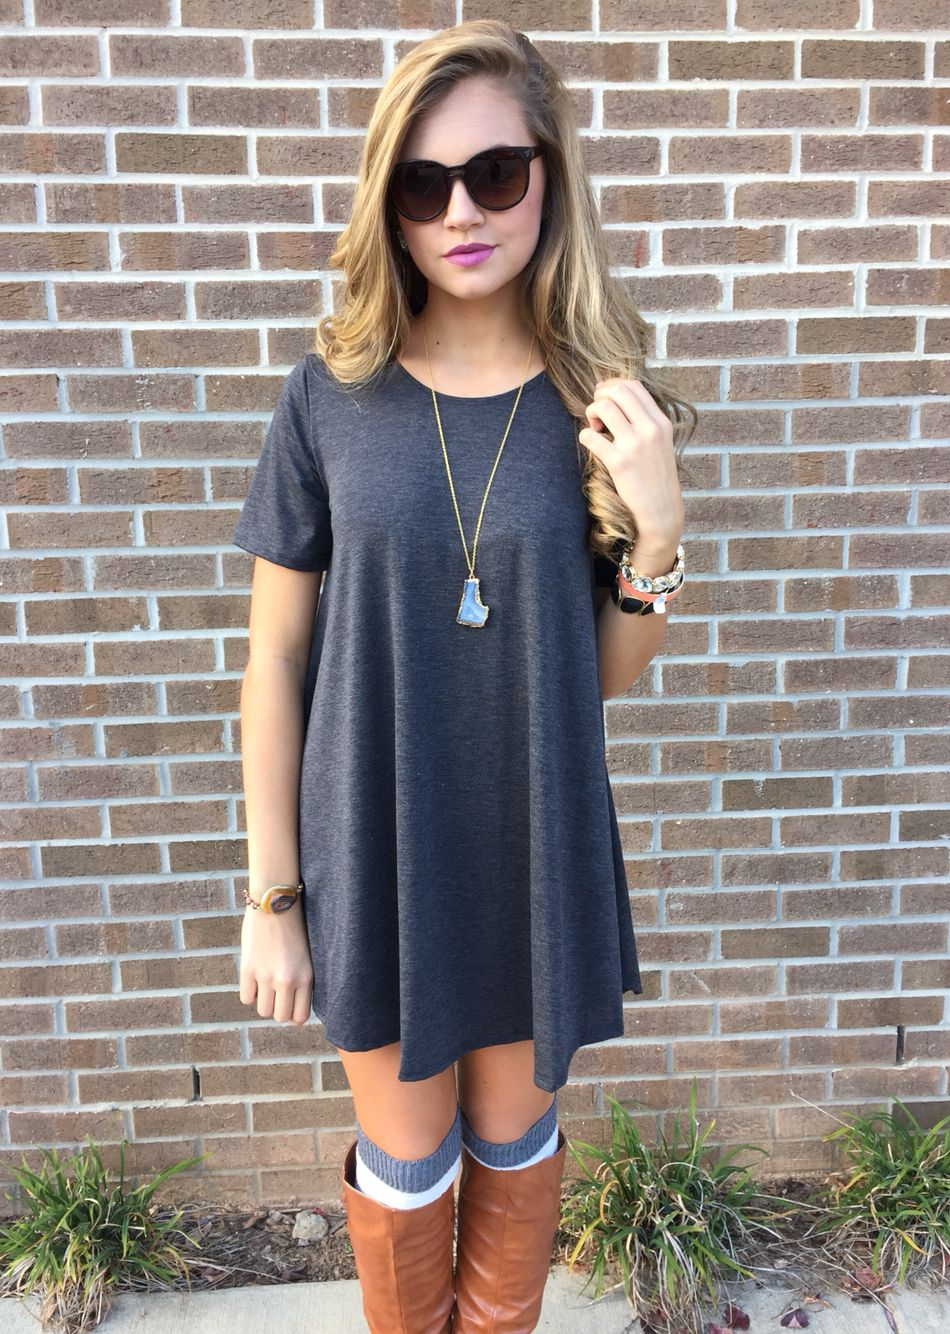 Gray t shirt dress fashion pinterest gray clothes and fall winter